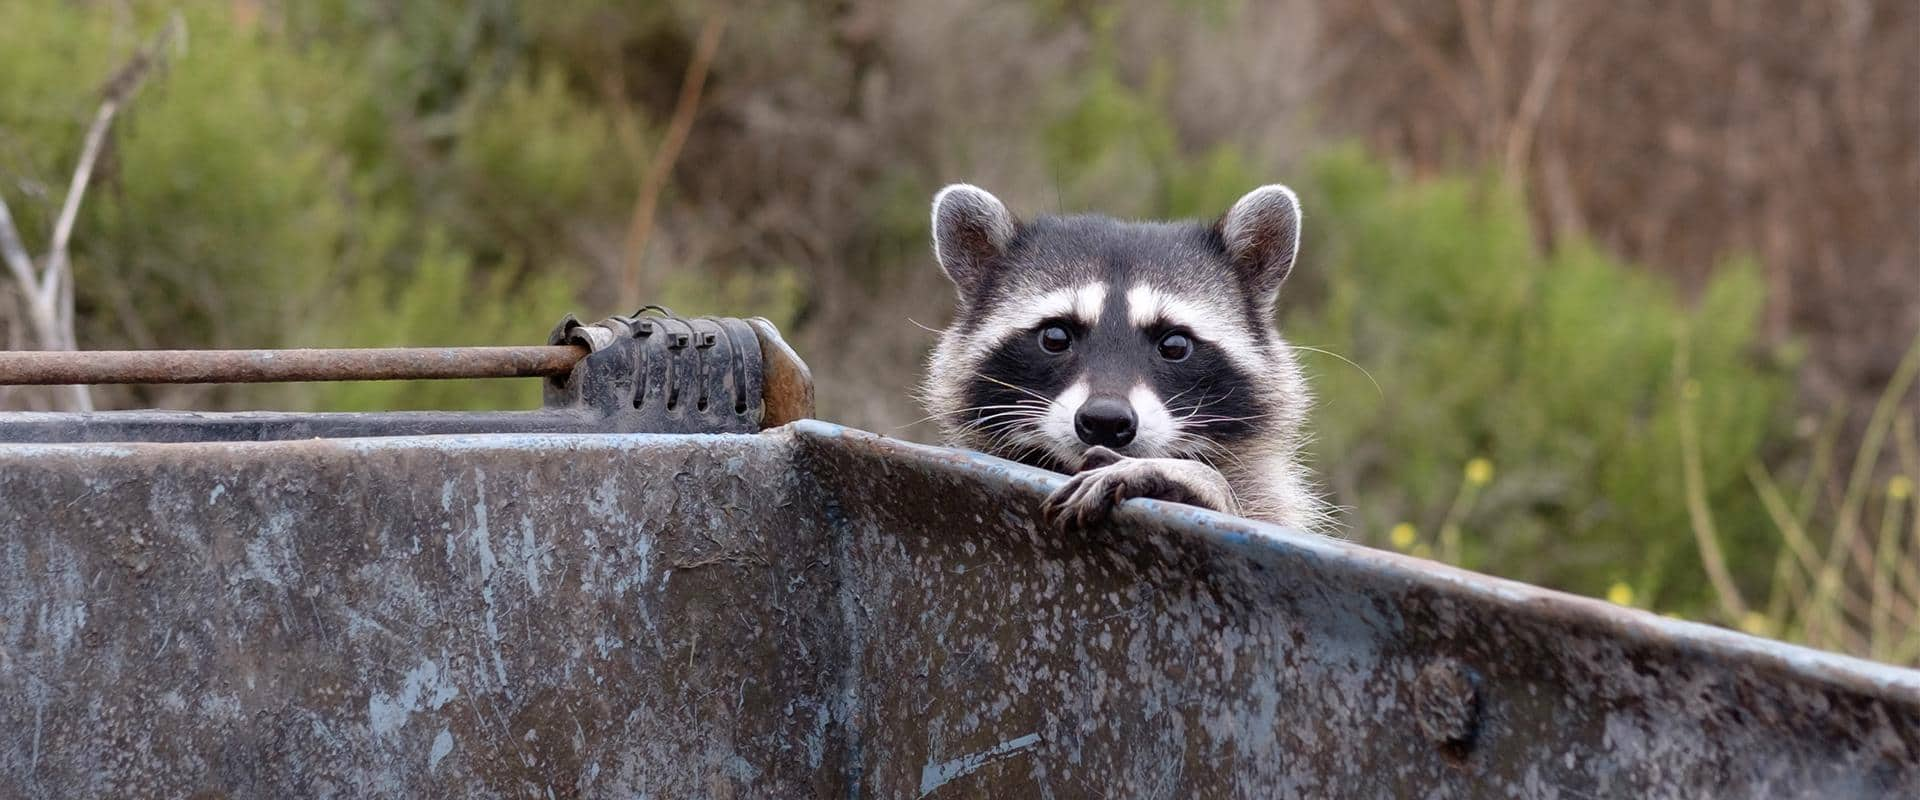 raccoon in dumpster in central washington